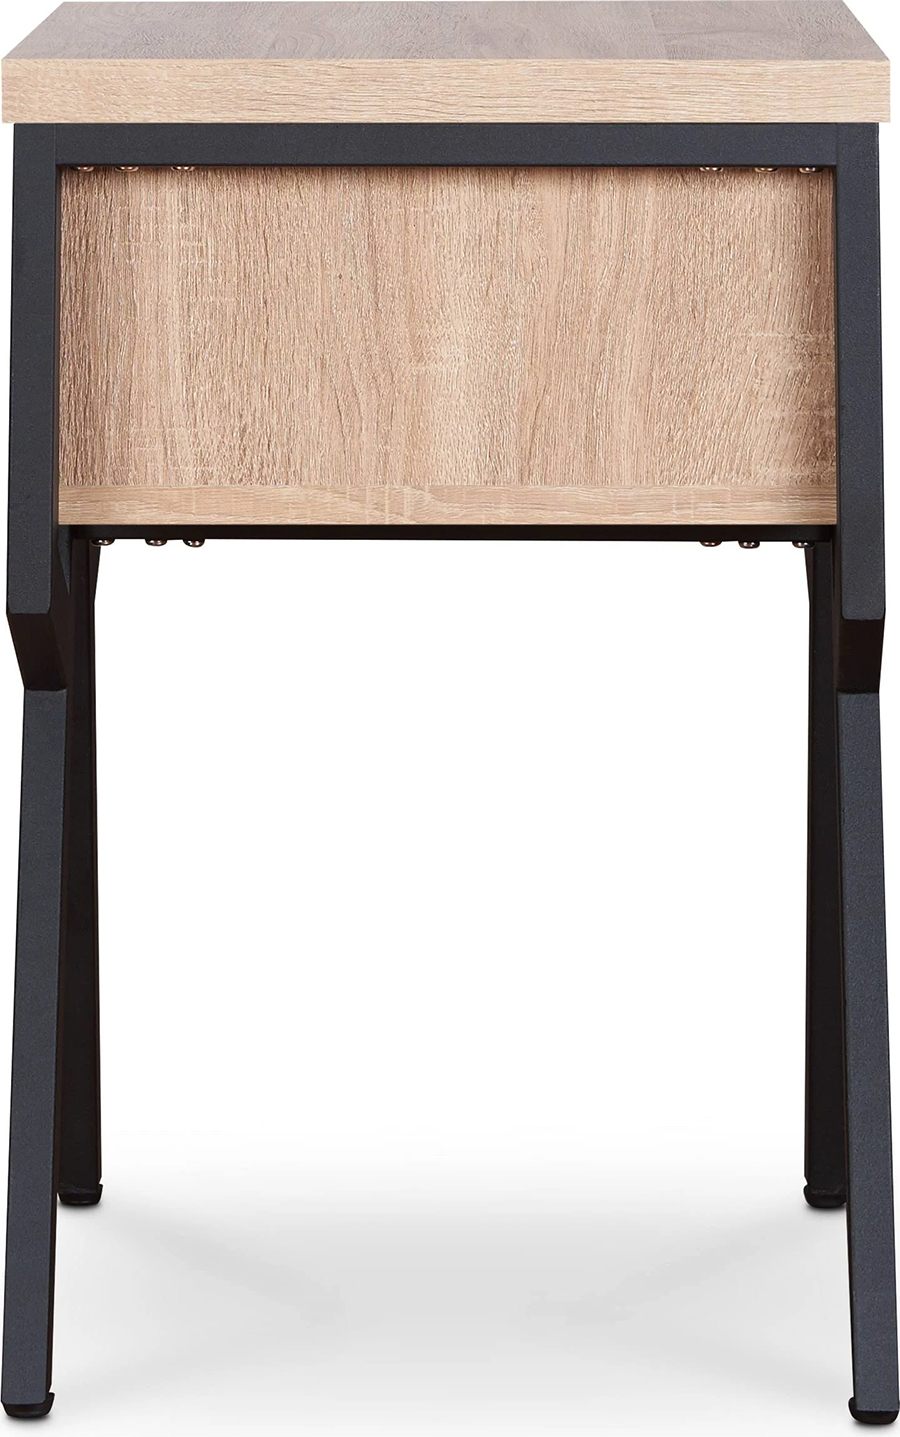 End Table Side